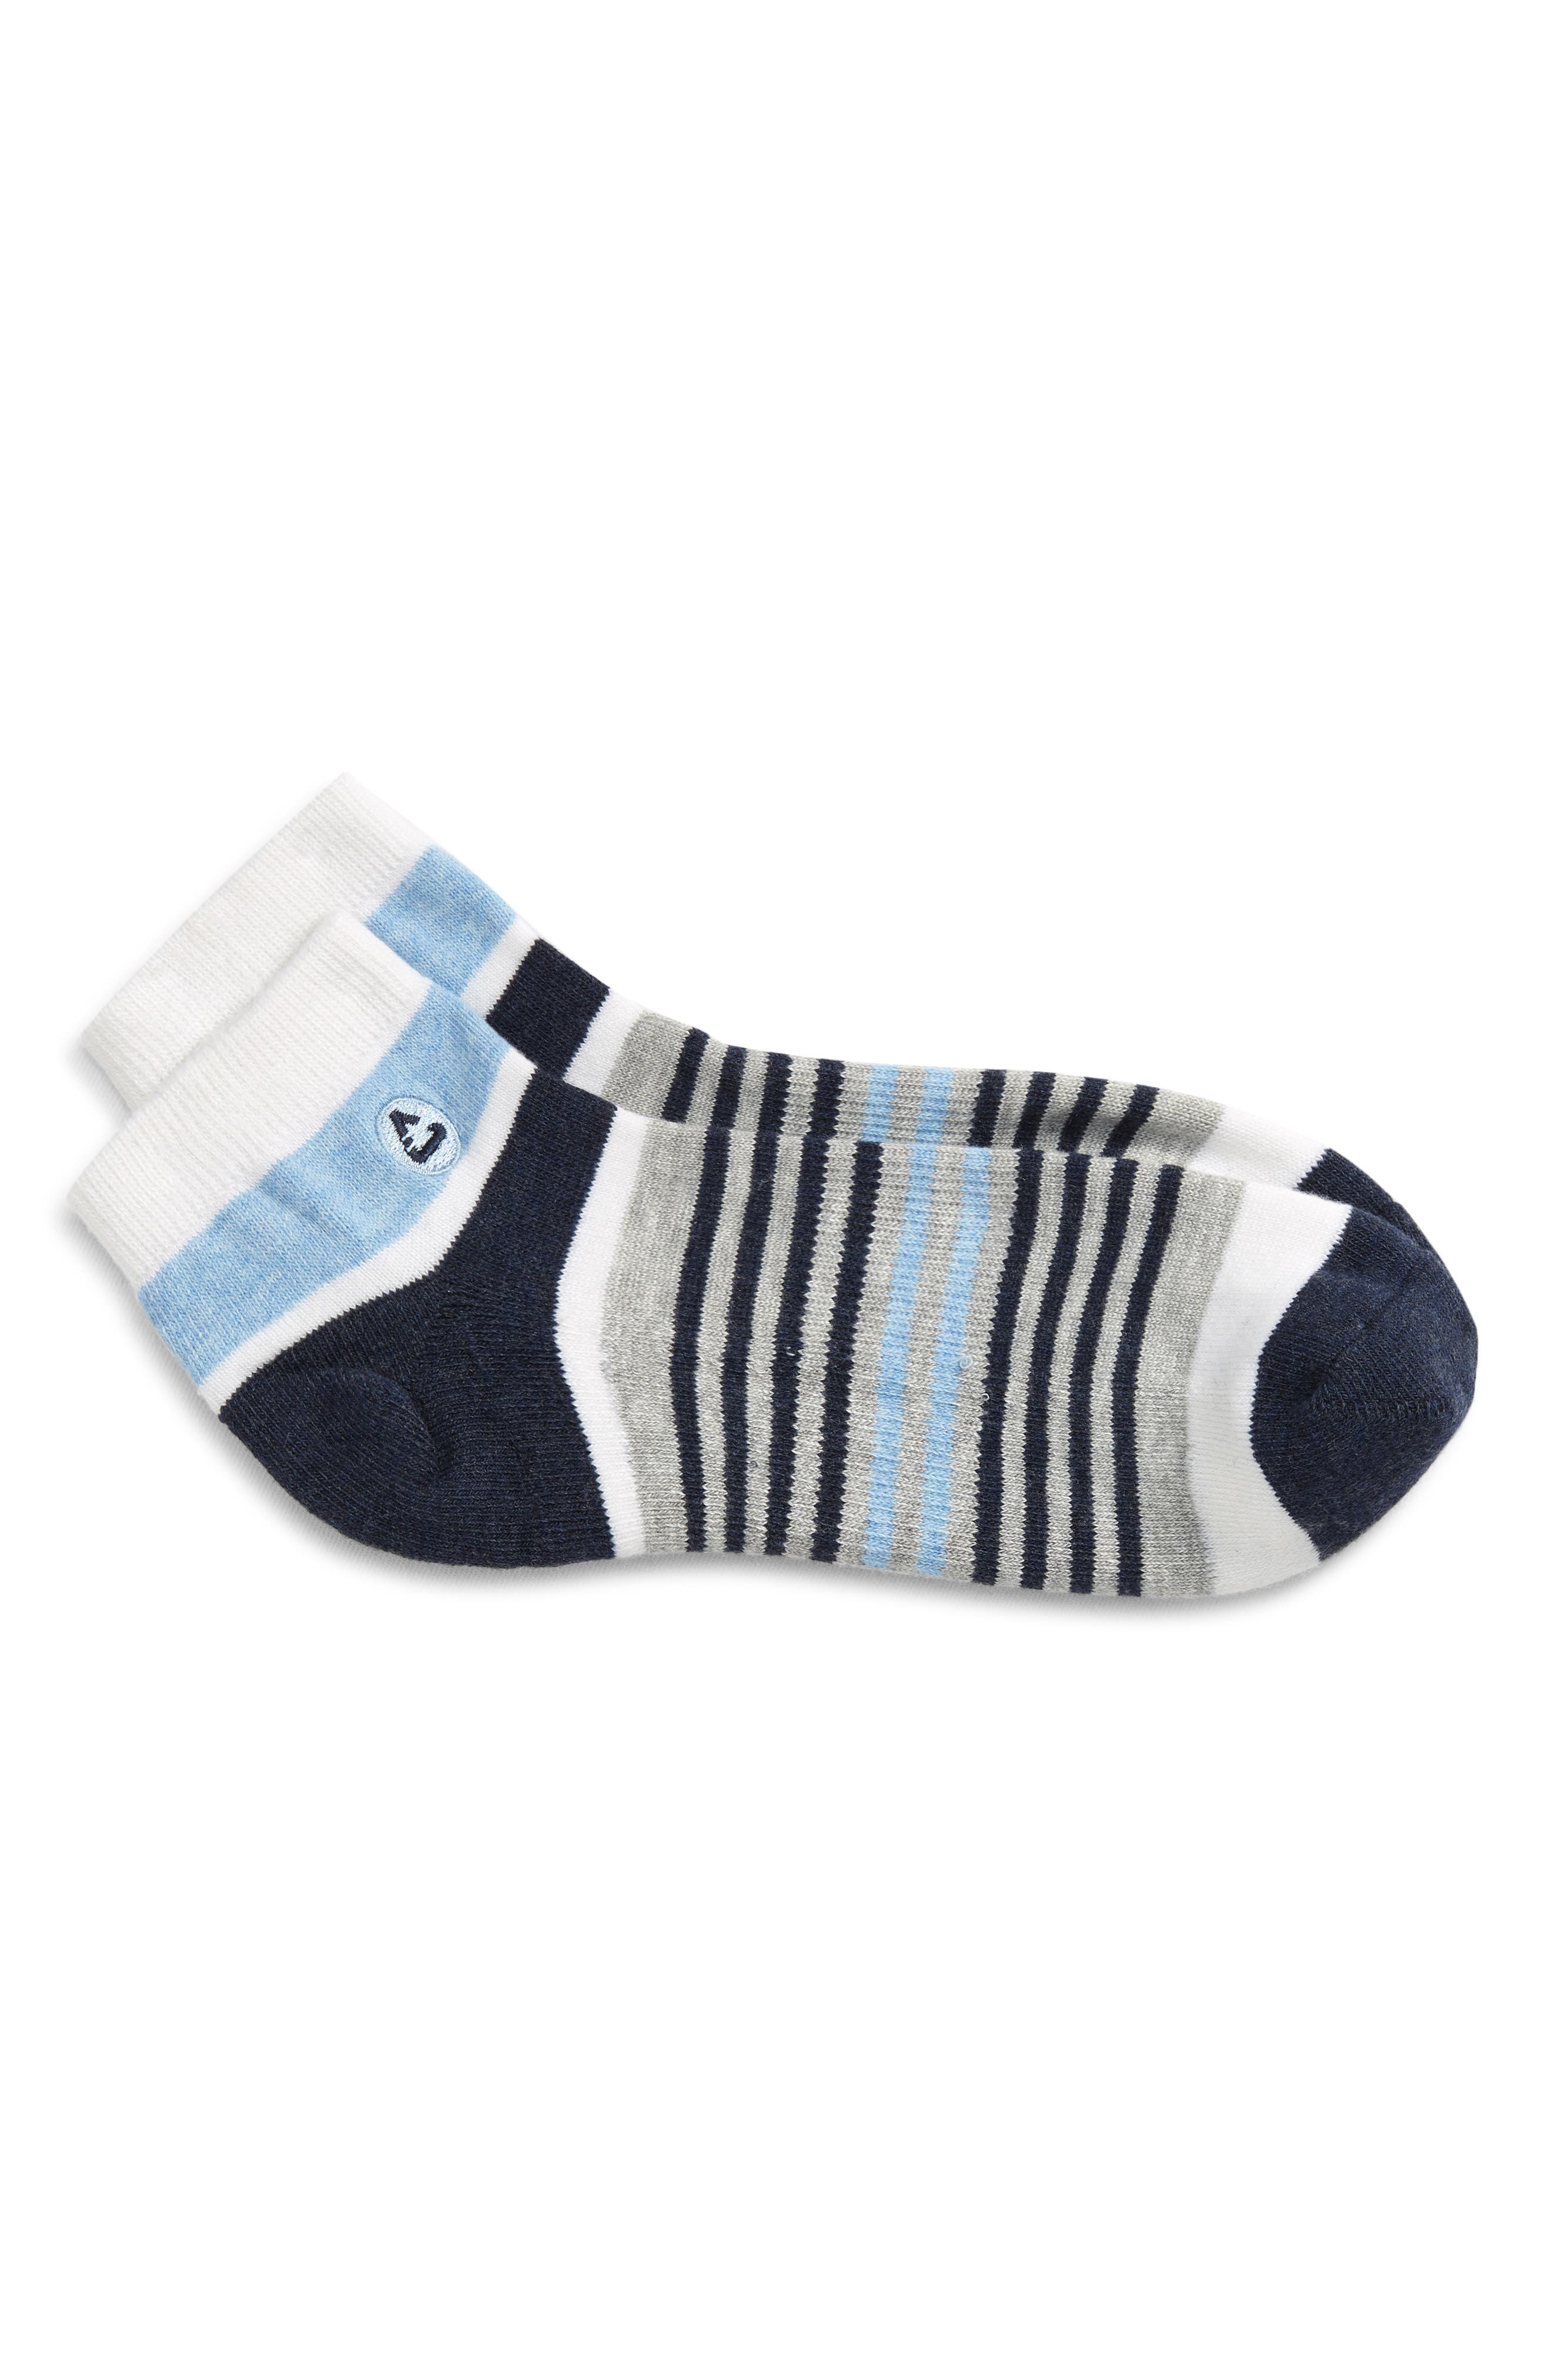 Cushioned, odor-resistant and ready for anything, these comfortable ankle socks sport the breathability of cotton and the sporty look of bold stripes. Style Name: Travismathew Primo Ankle Socks. Style Number: 6117128. Available in stores.